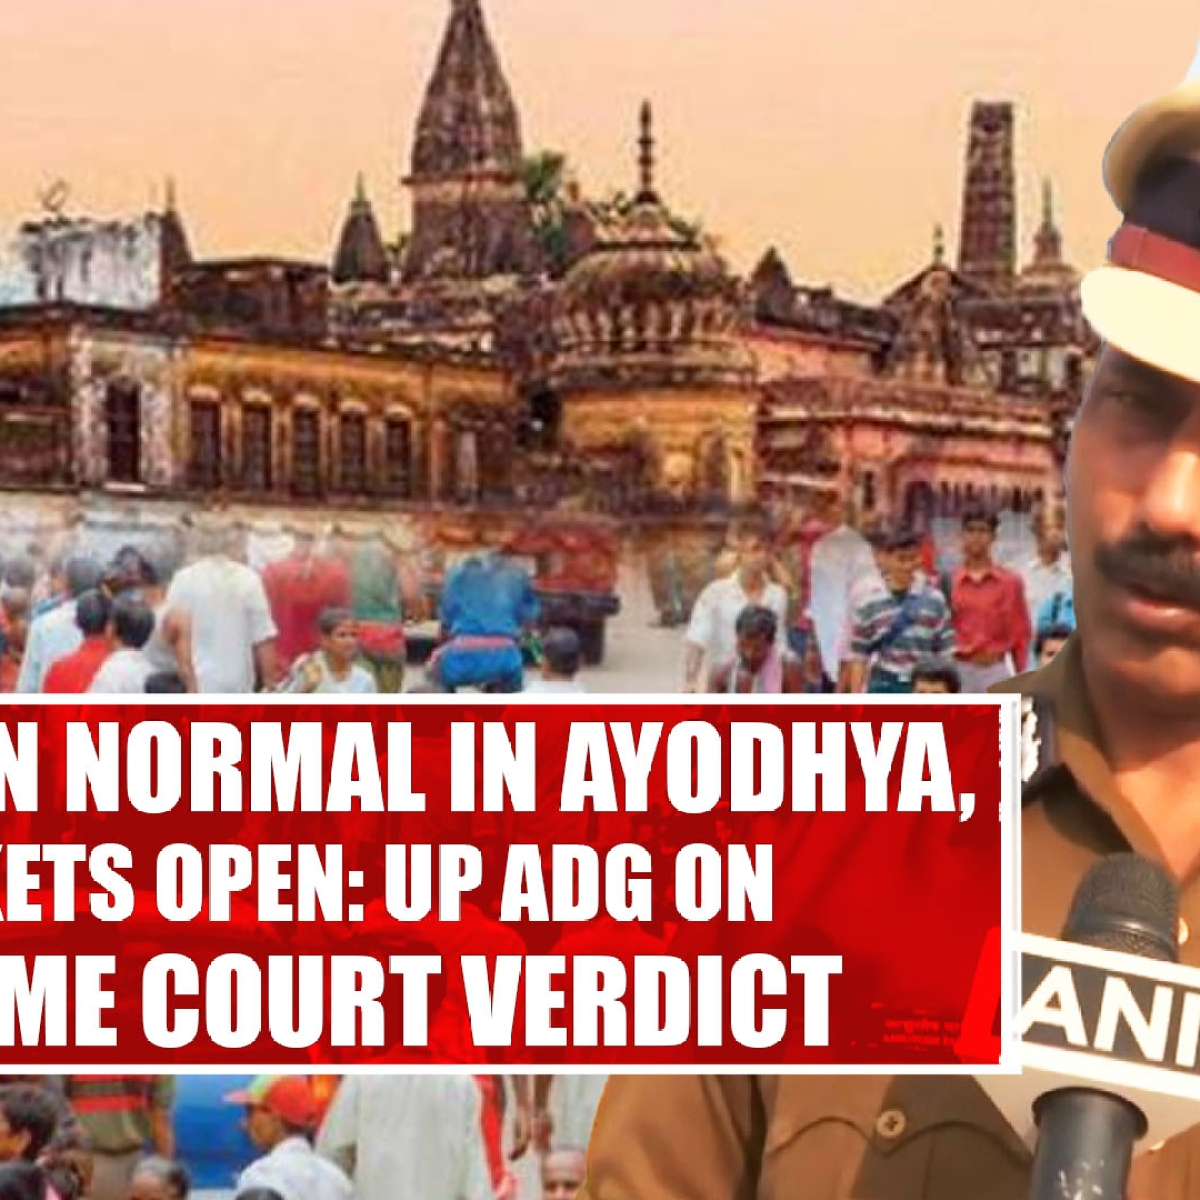 Situation Normal In Ayodhya, Markets Open UP ADG On Supreme Court Verdict